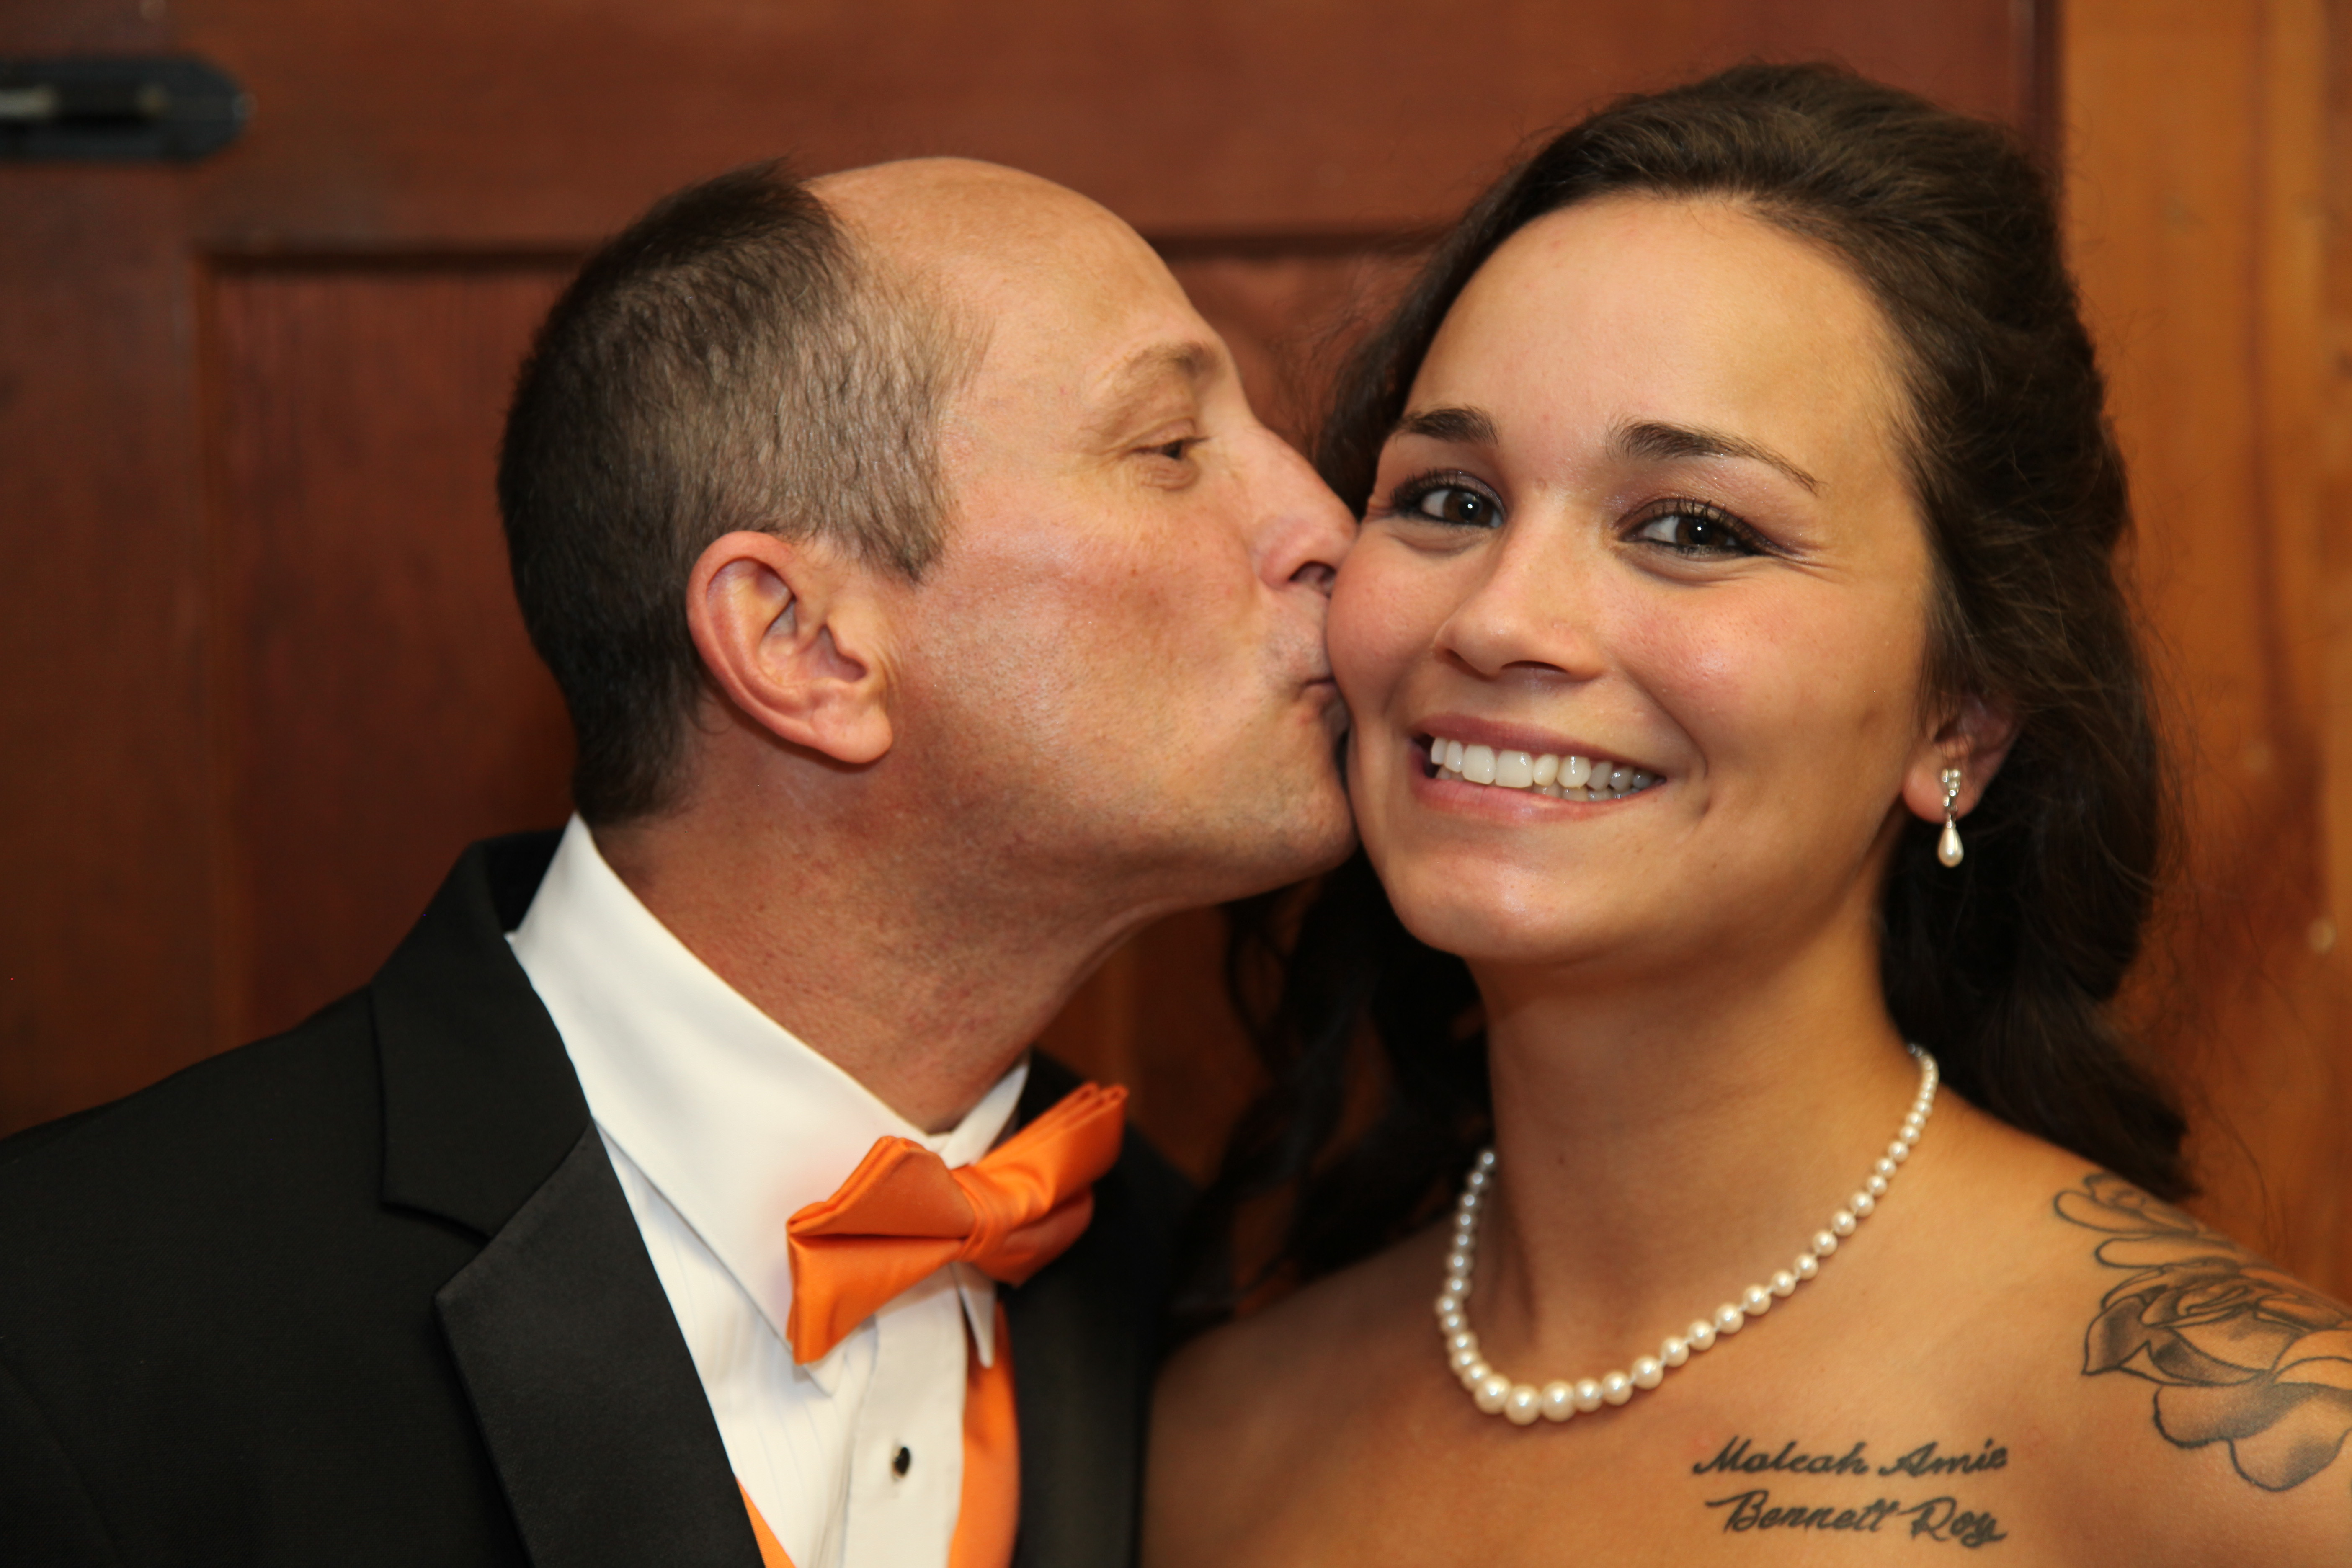 Father of the Bride Kiss